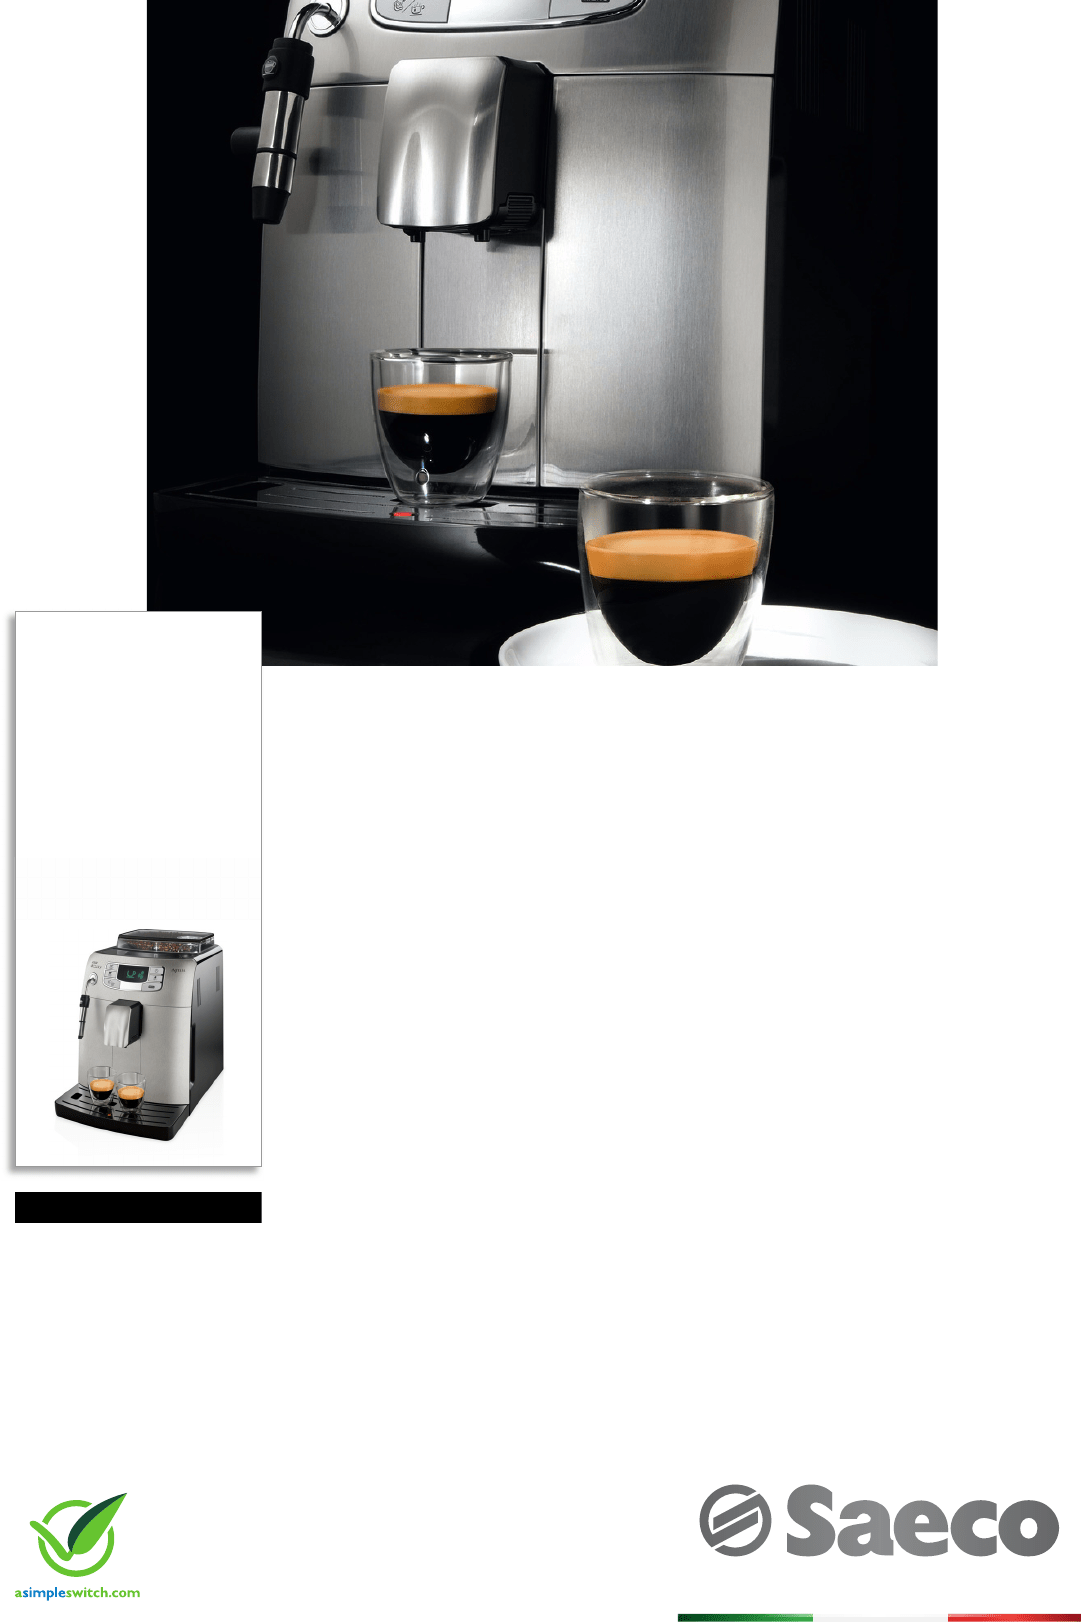 Philip Saeco Philips Hd8752 83 Super Automatic Espresso Machine Datenblatt